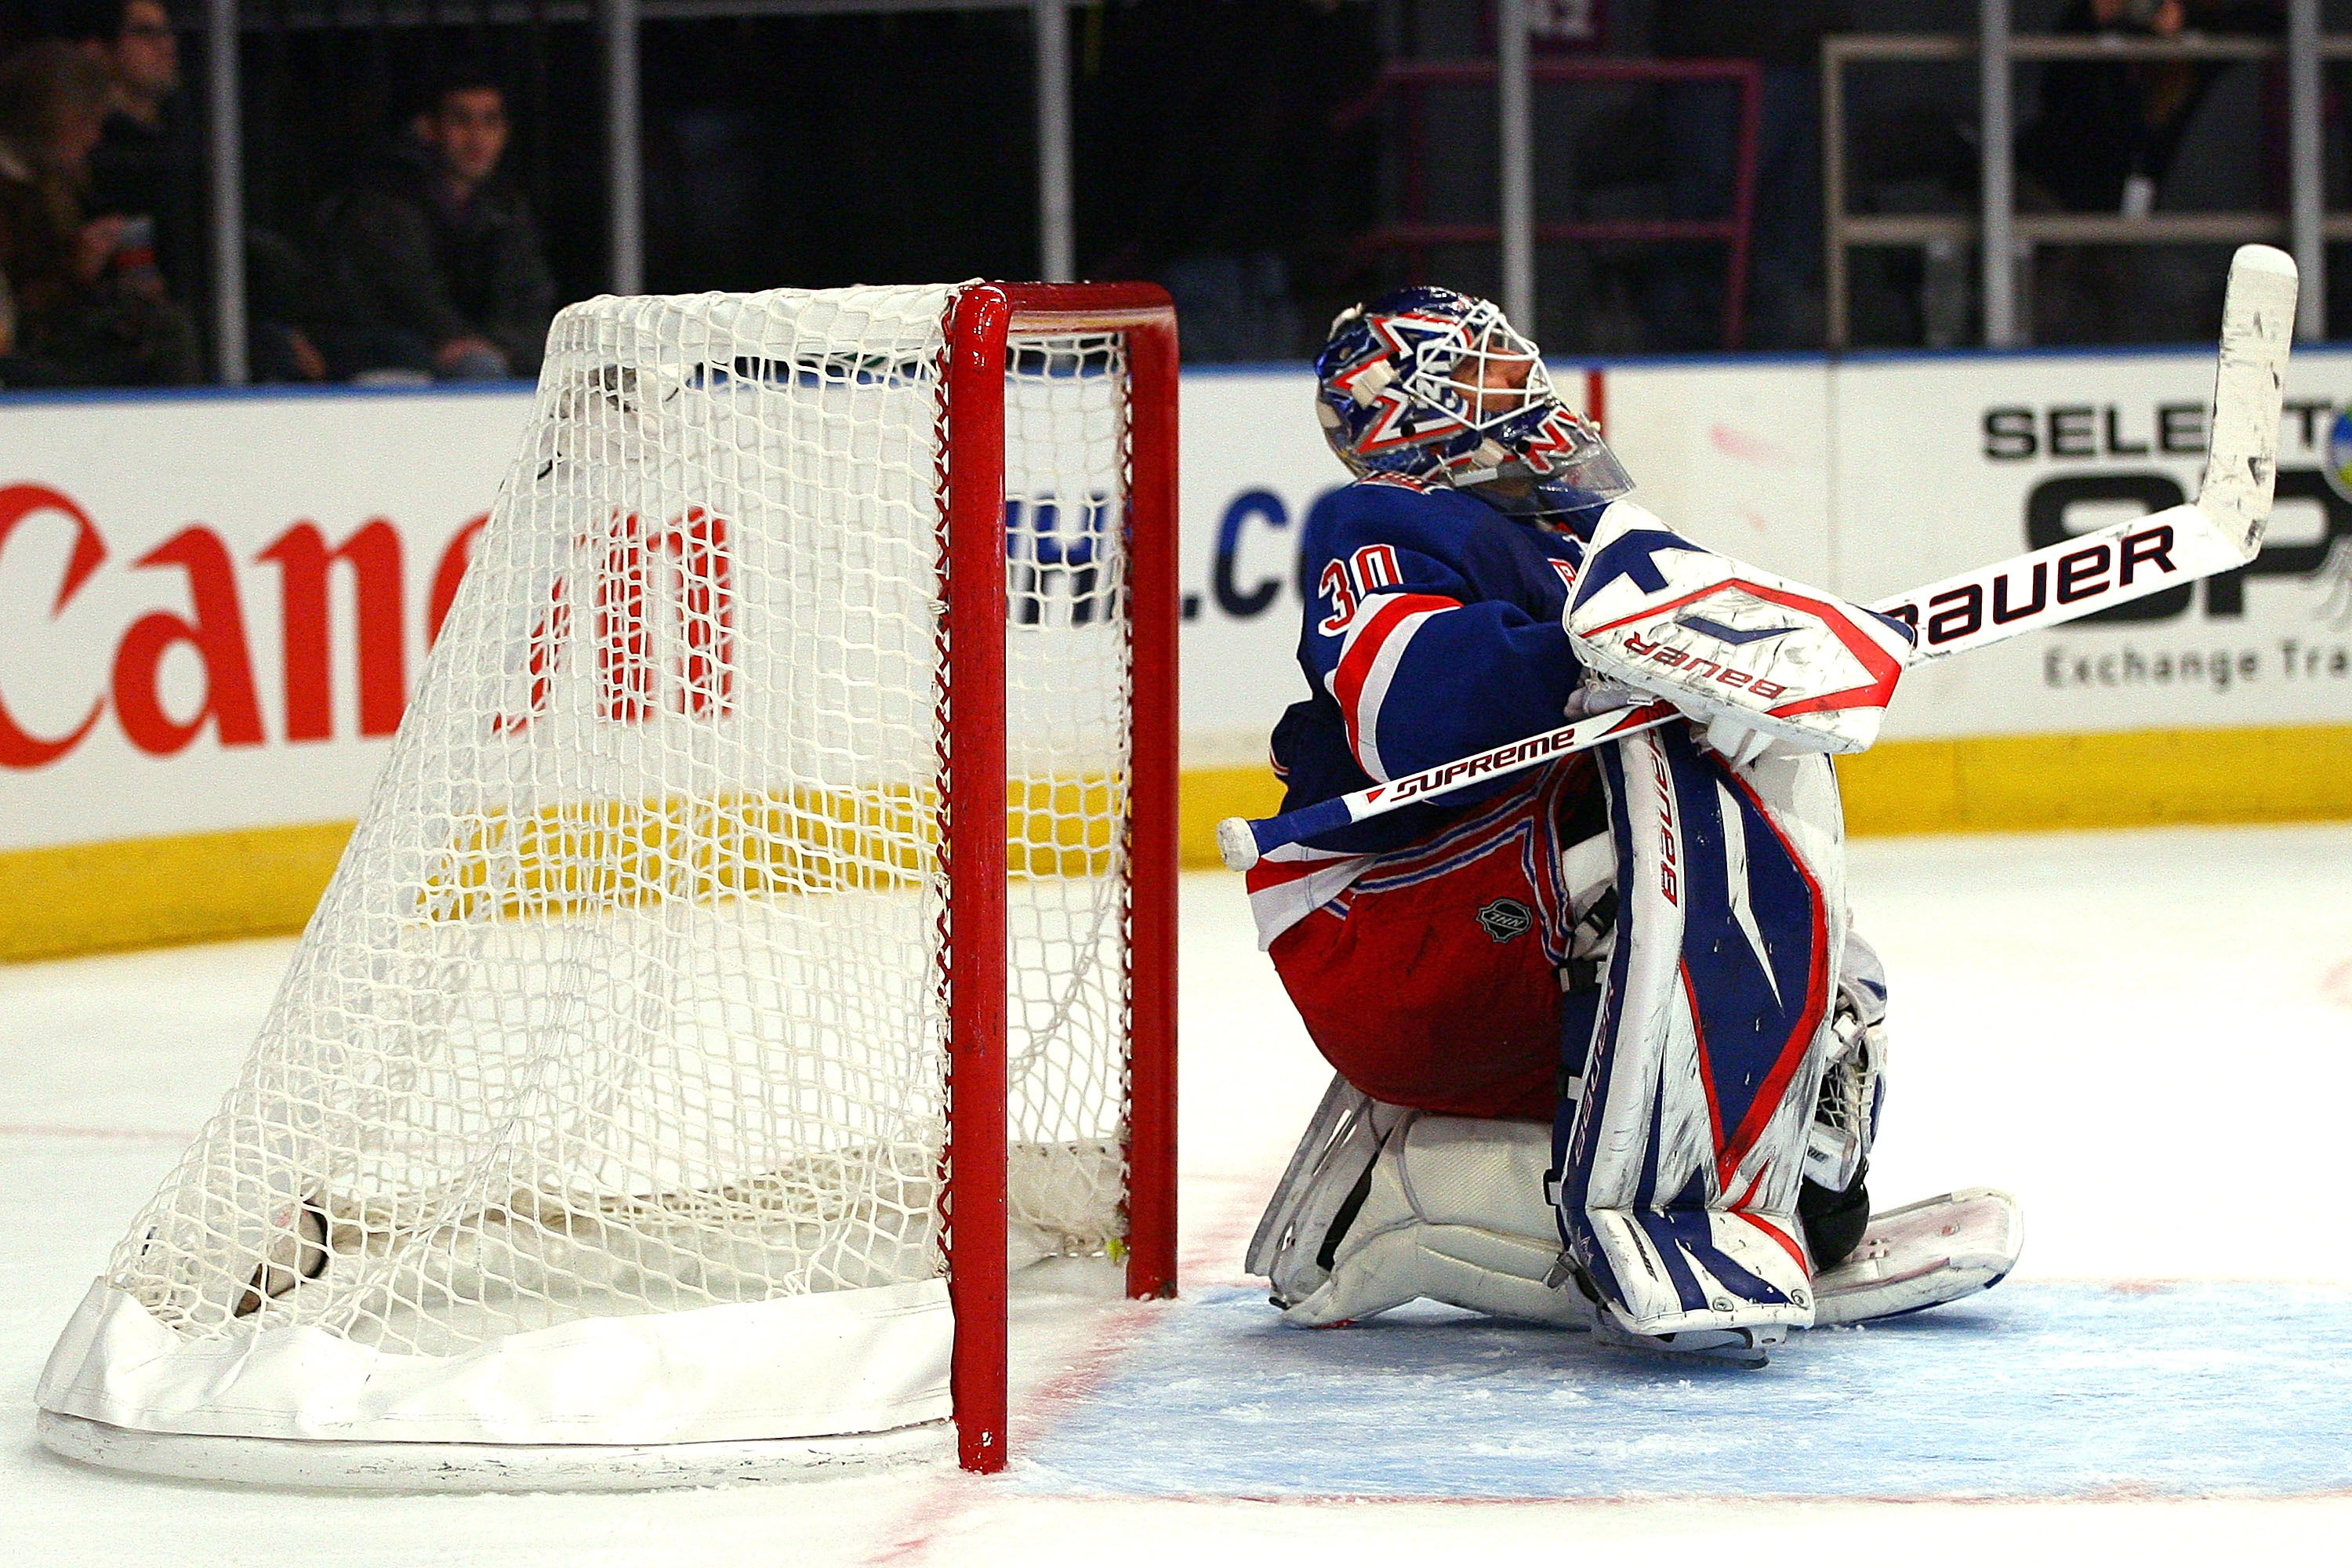 NEW YORK - OCTOBER 29:  Henrik Lundqvist #30 of the New York Rangers sits on the ice after allowing Erik Cole, of the Carolina Hurricanes, to score the game winning goal in the third period on October 29, 2010 at Madison Square Garden in New York City, Ne